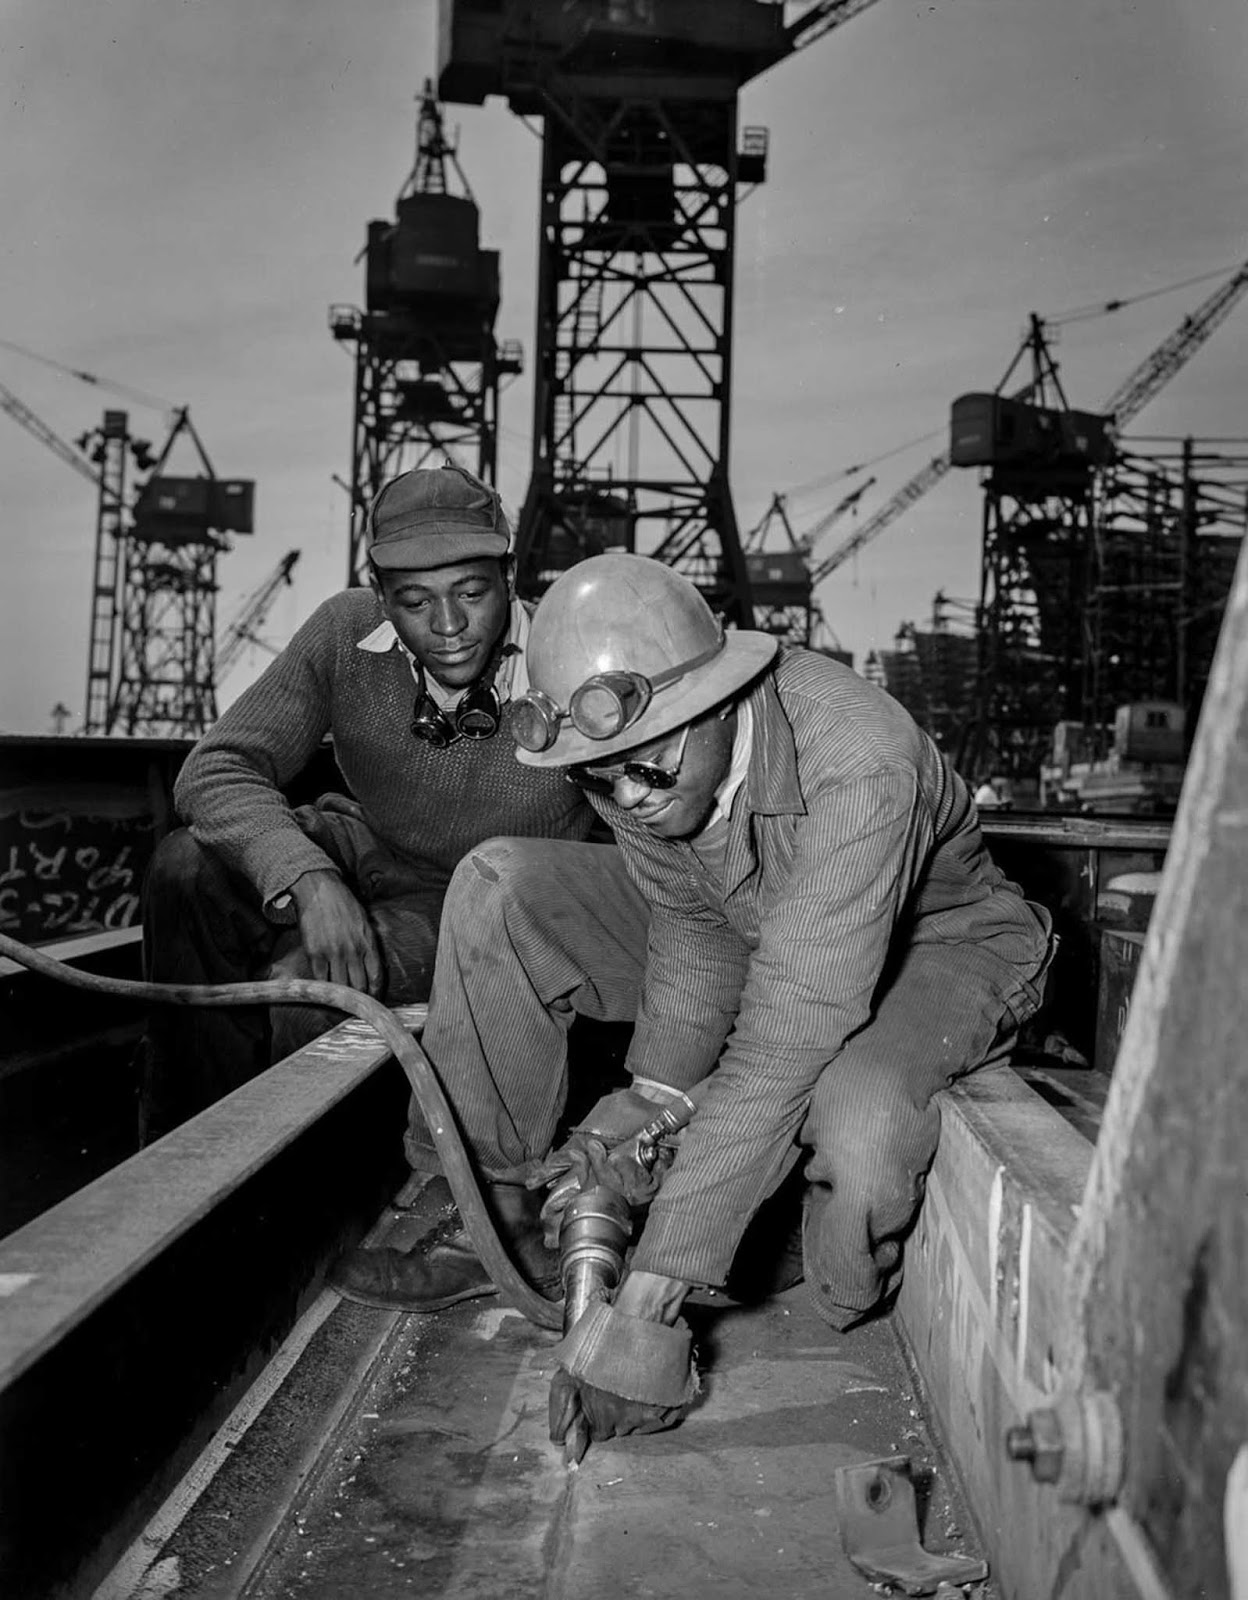 A chipper removes excess metal from a welded seam aboard the Liberty ship Frederick Douglass.